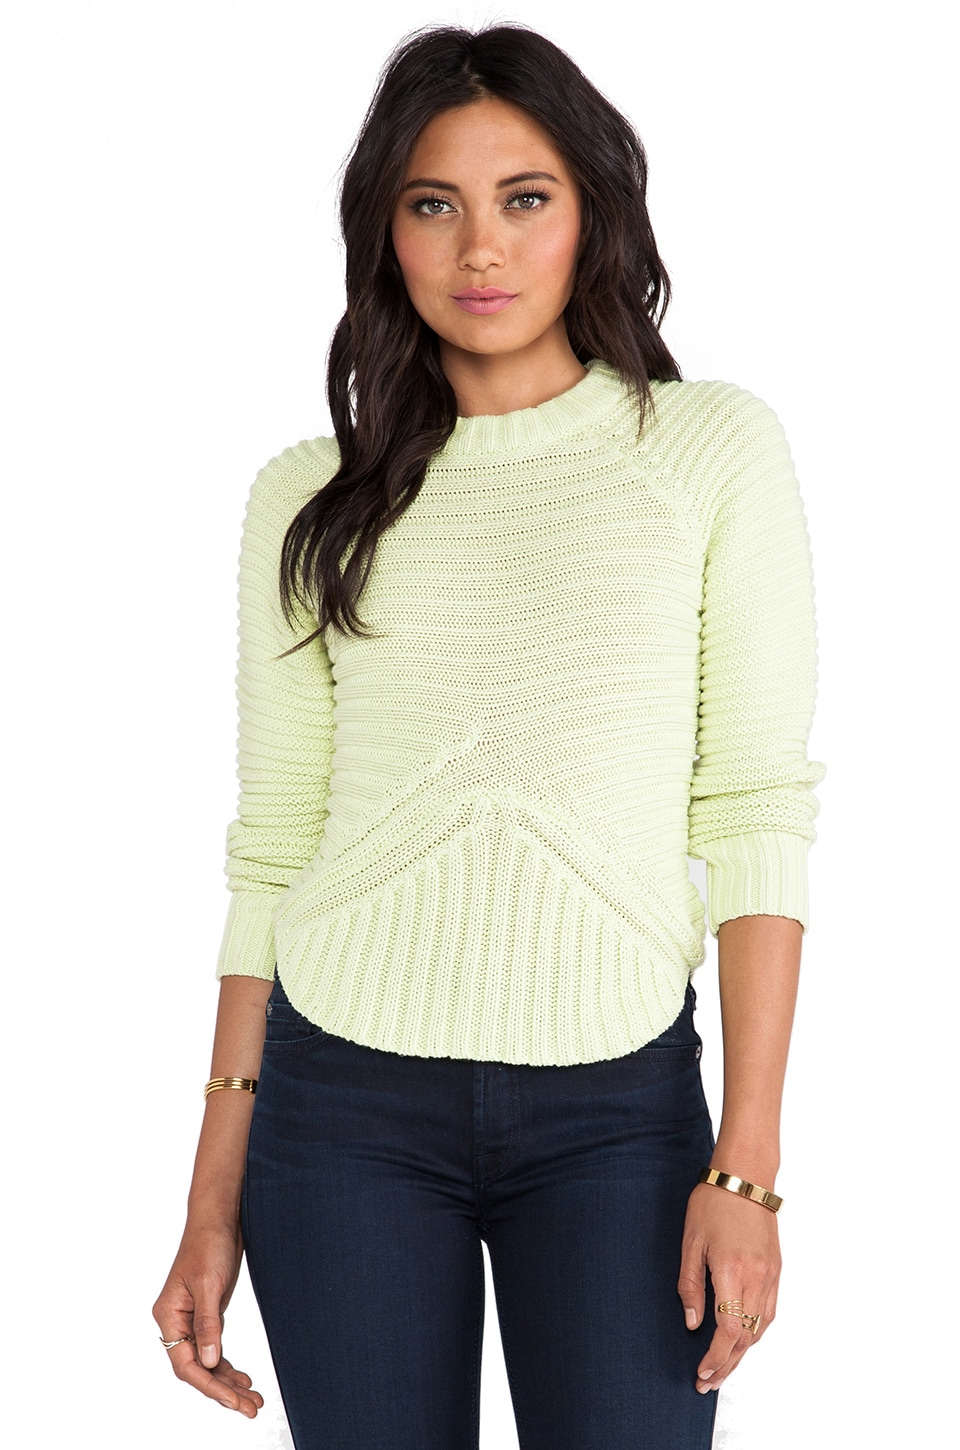 Minty Meets Munt Rib Knit Sweater in Limelight